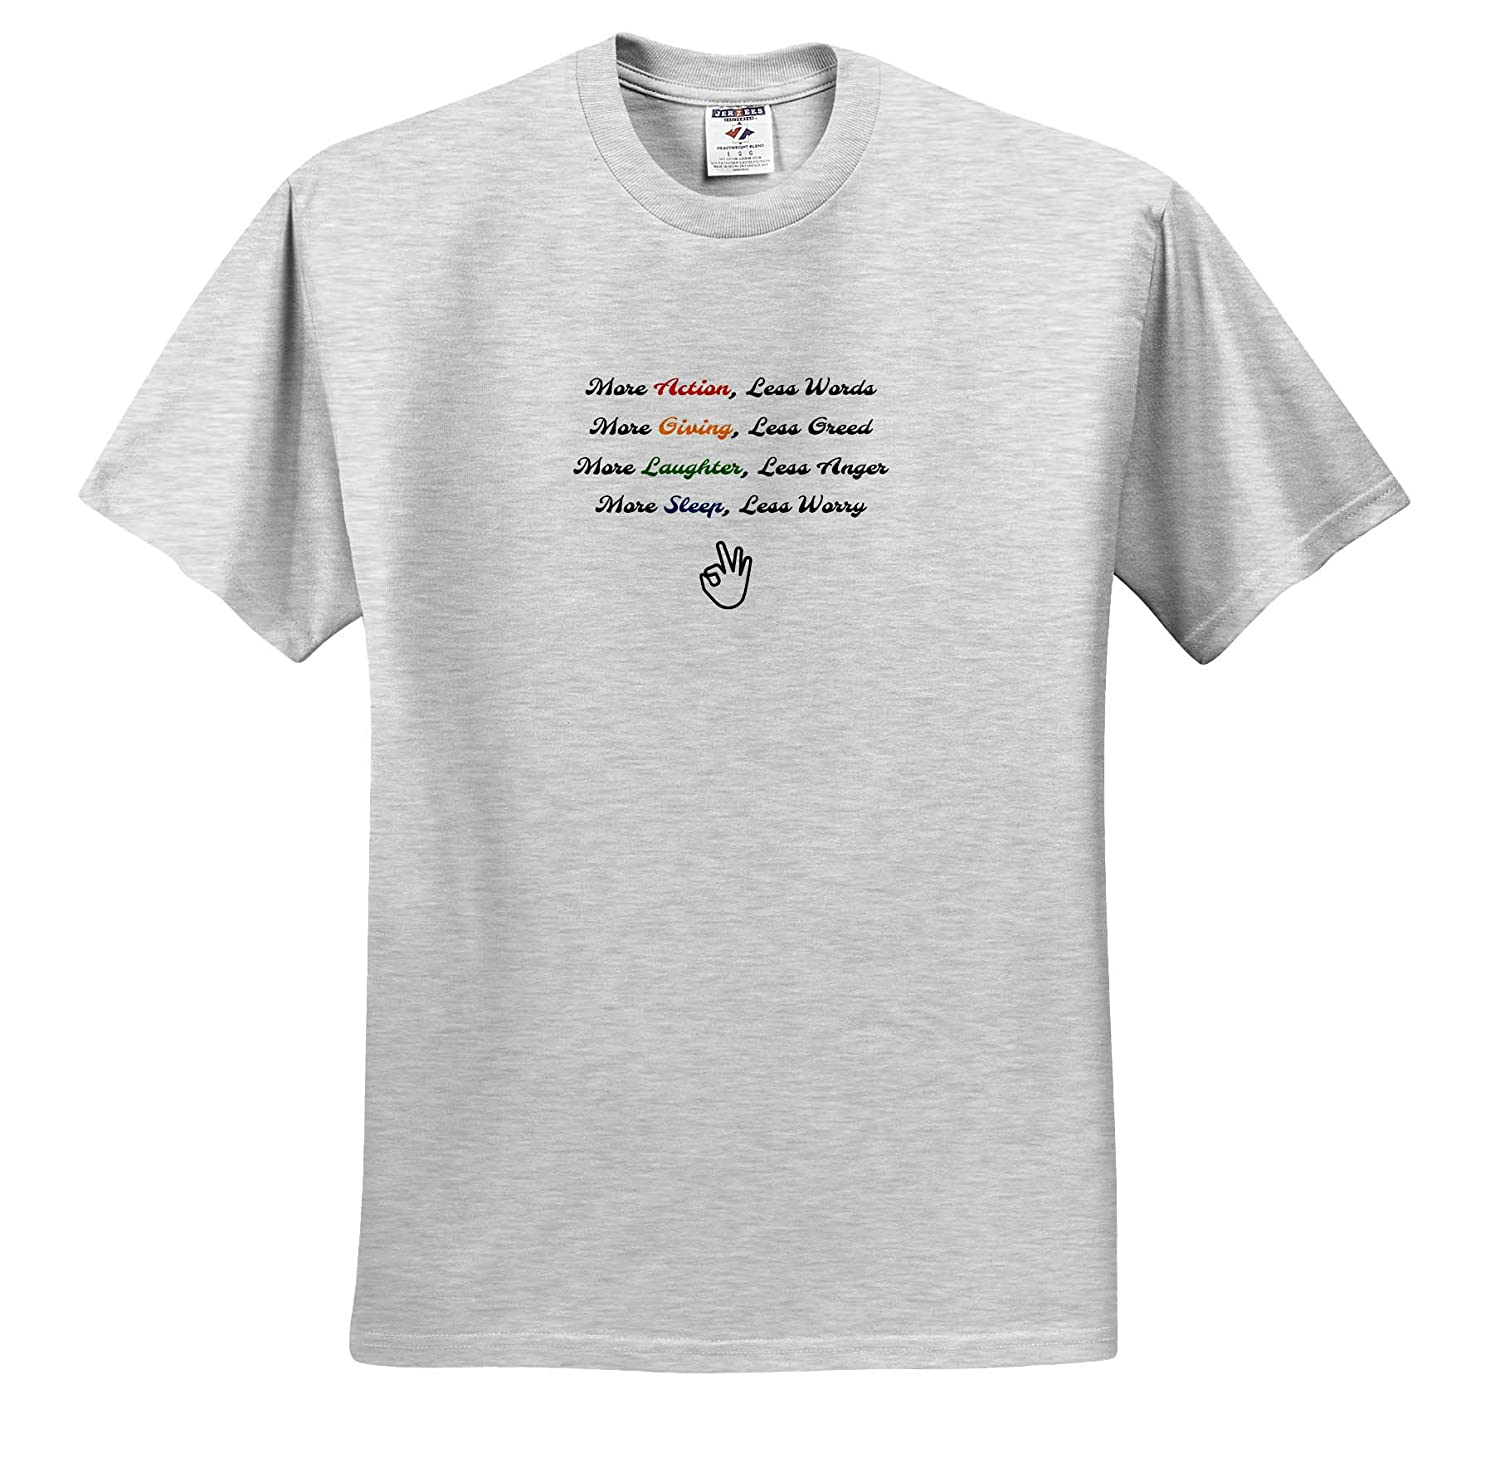 Quote 3dRose 3D Rose Nicole R T-Shirts Image of More Action Less Words More Giving Less Greed More Laughter